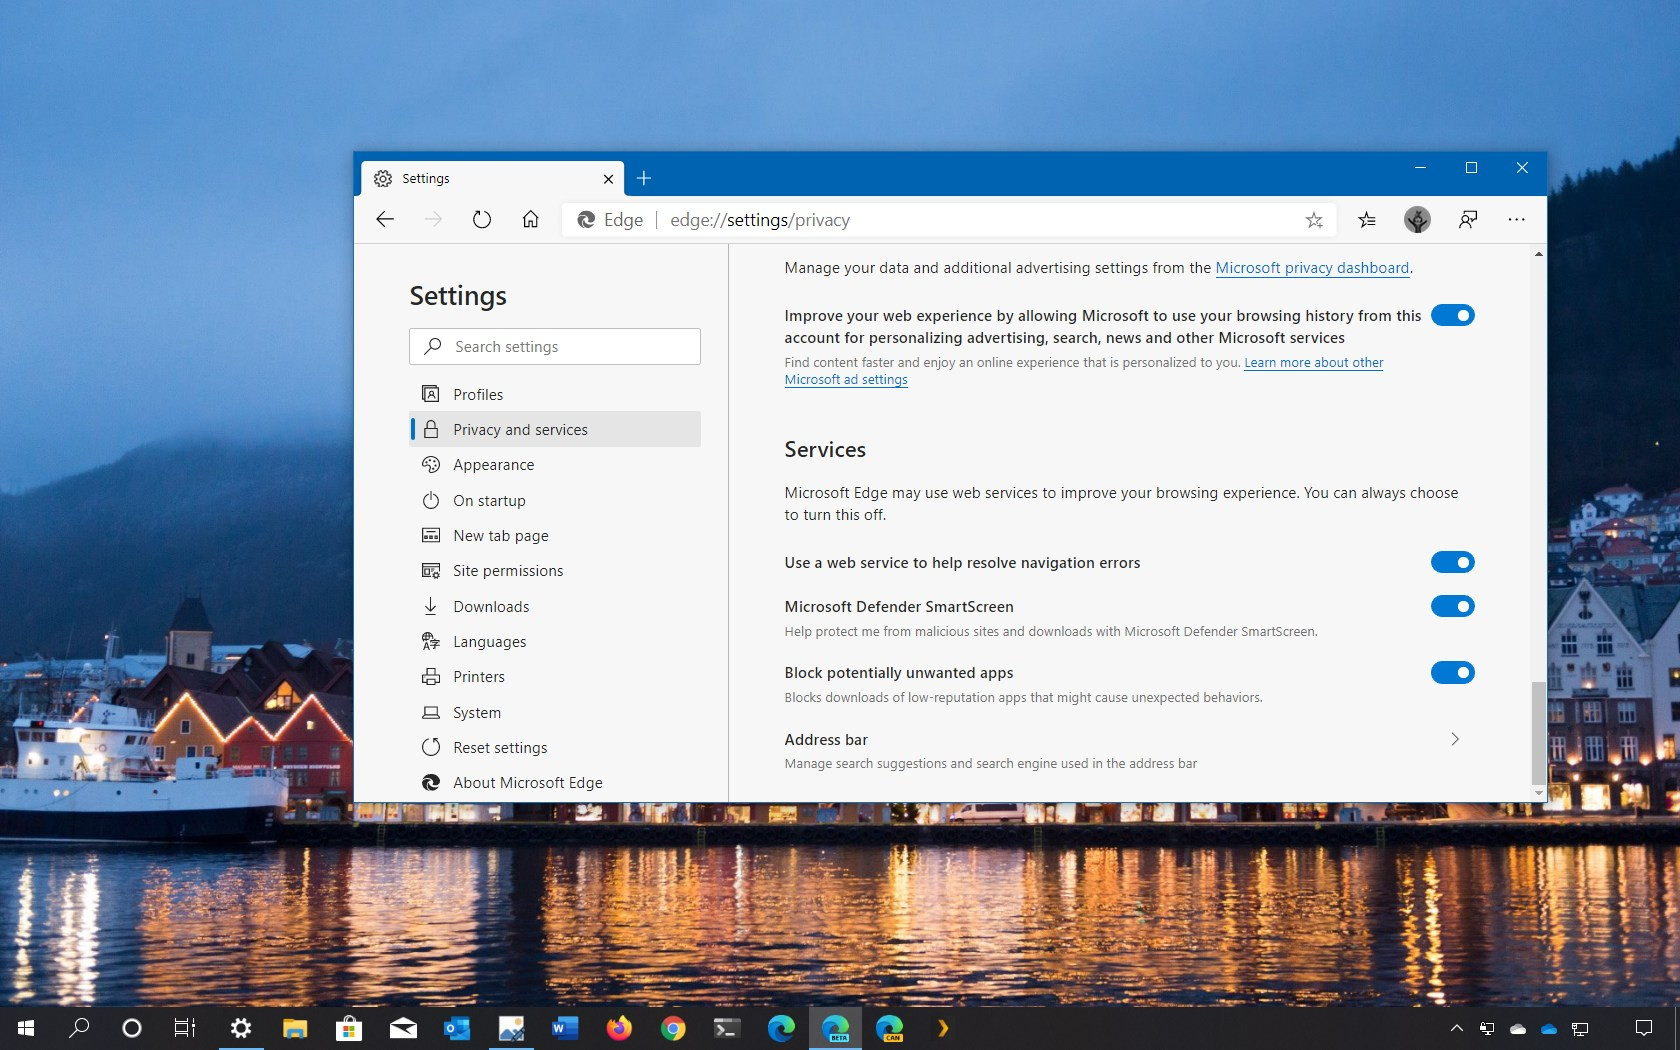 Microsoft Edge Chromium block potentially unwanted apps downloads